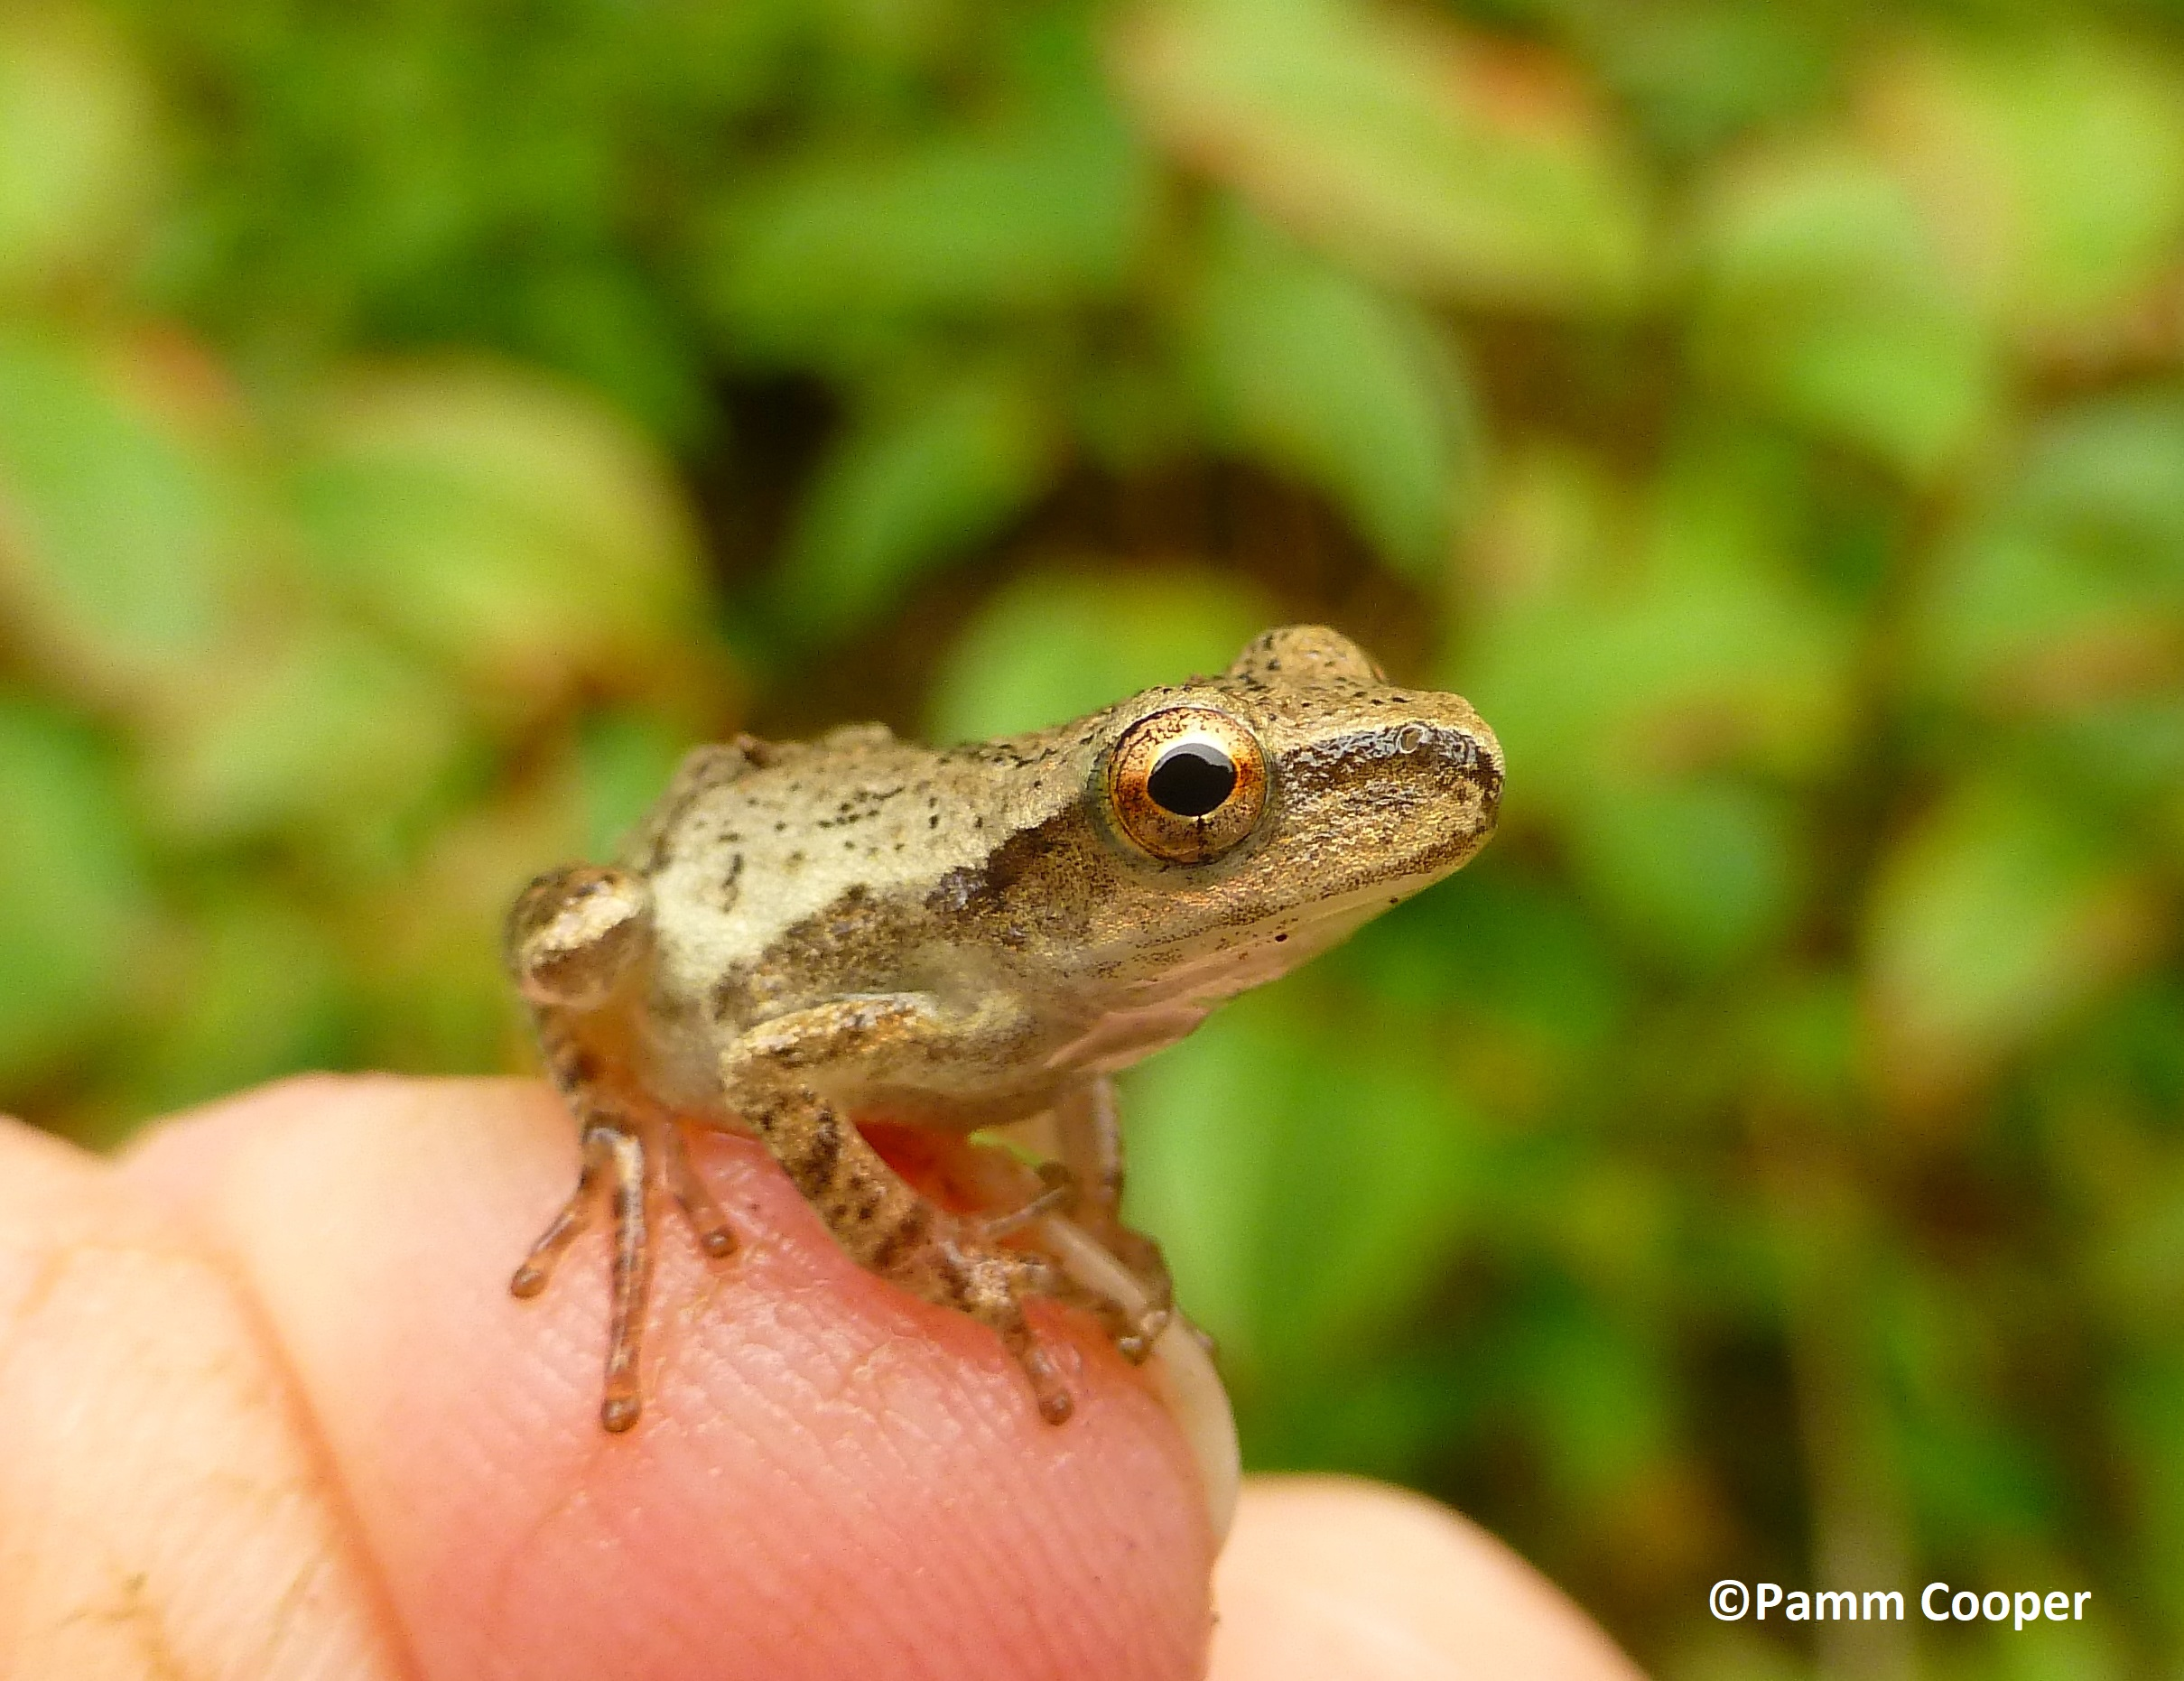 Spring peepers live up to their name